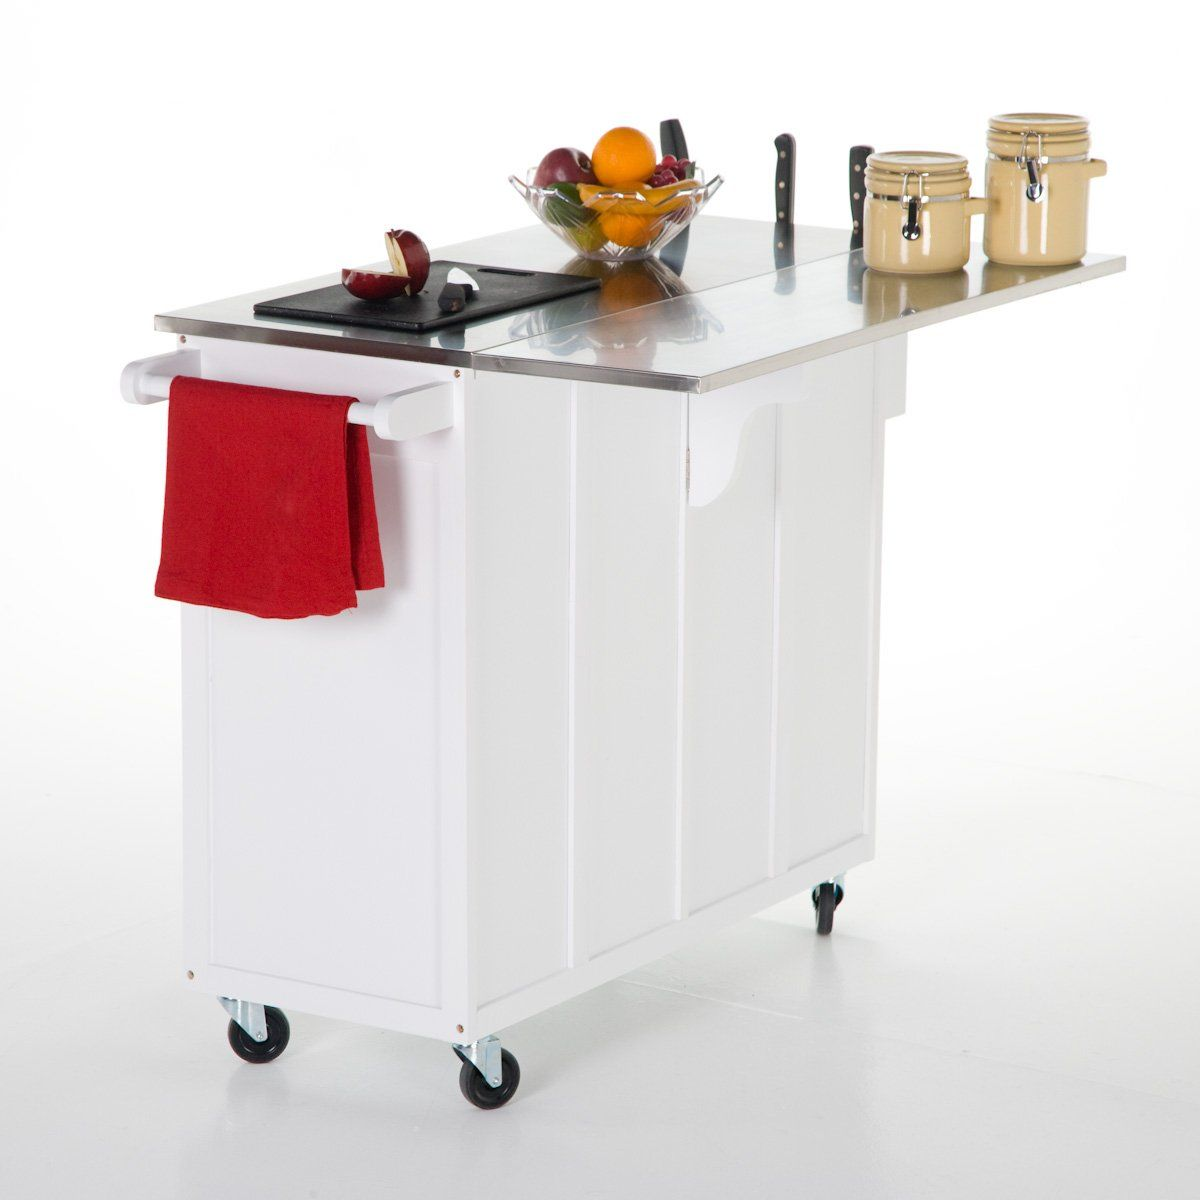 Stools Kitchen Islands The Randall Portable Kitchen Island With Optional Stools